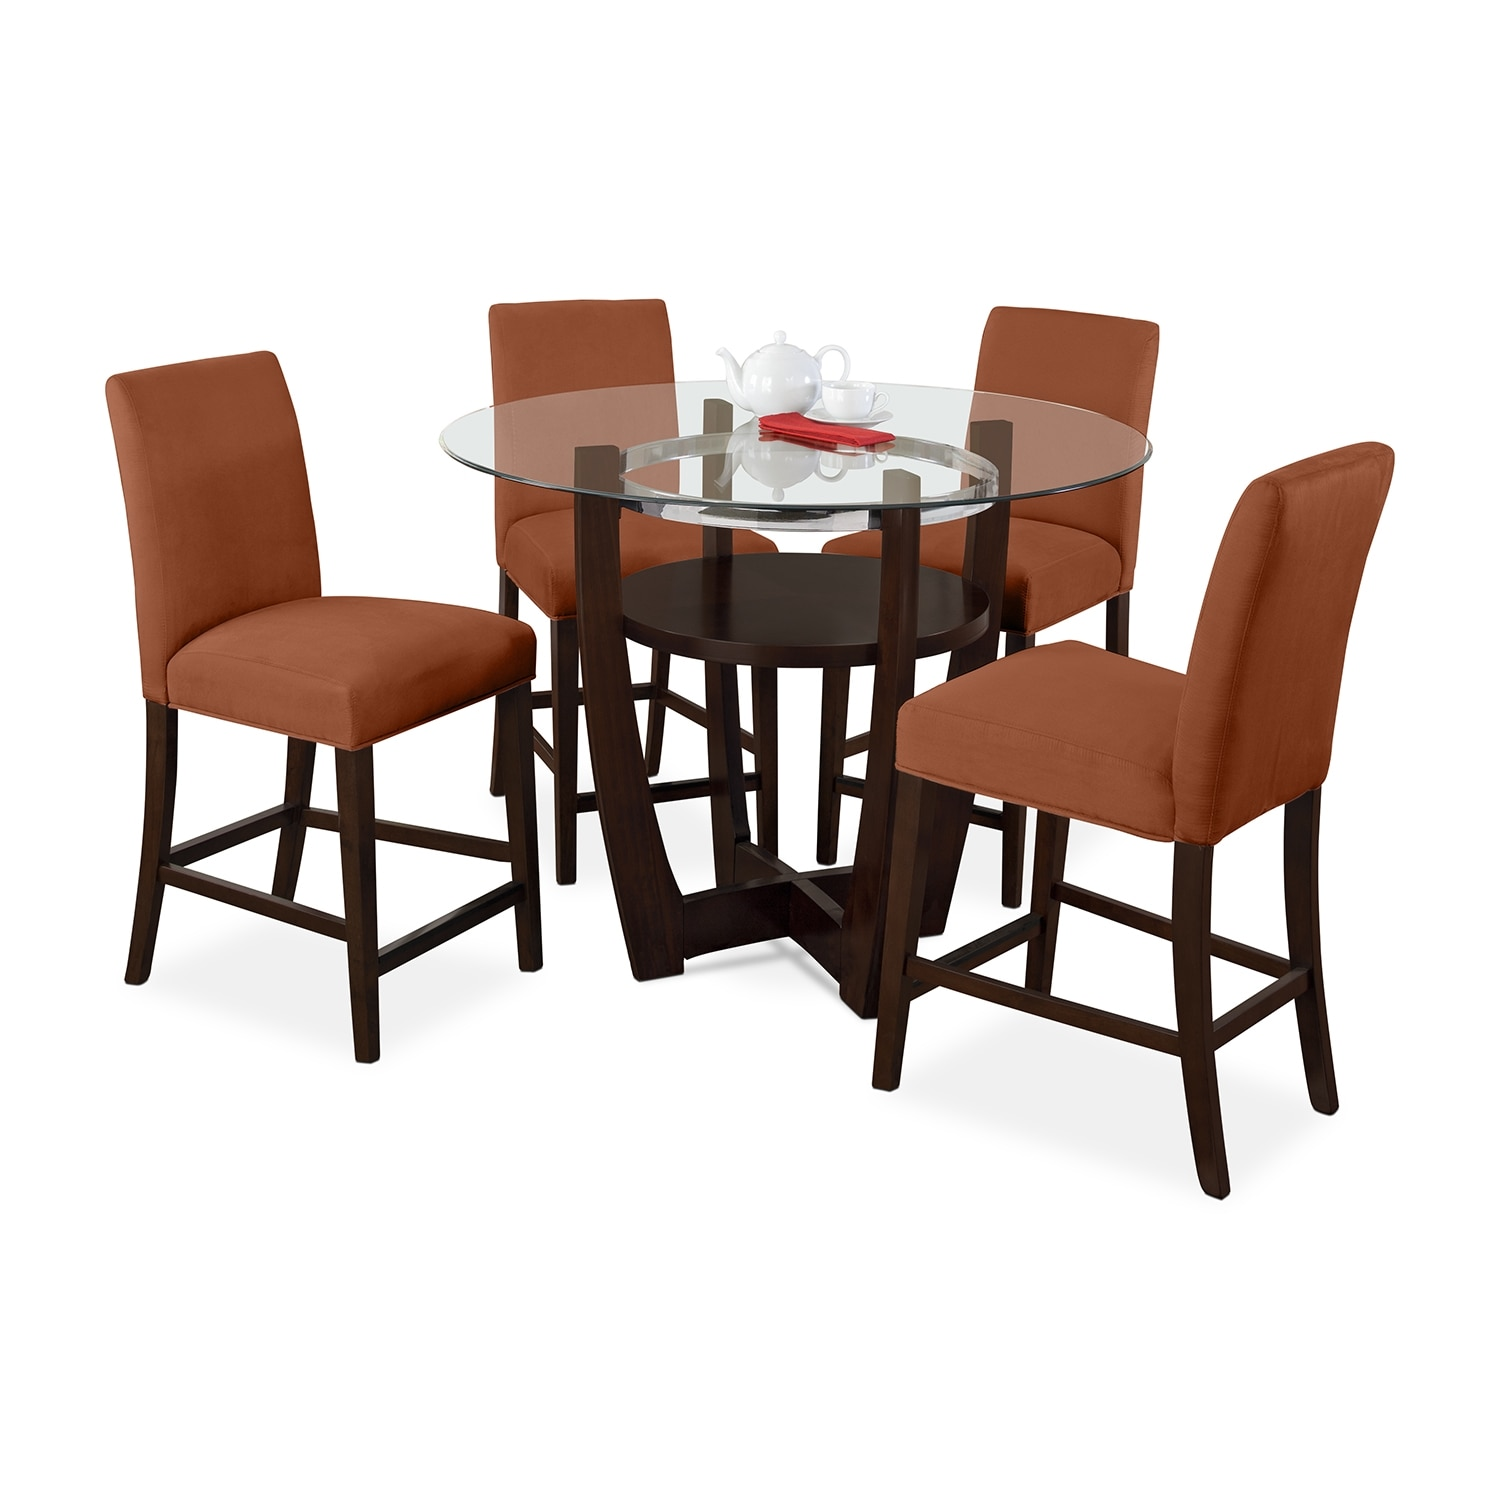 alcove counter height dinette with 4 side chairs orange - Dining Room Sets Value City Furniture